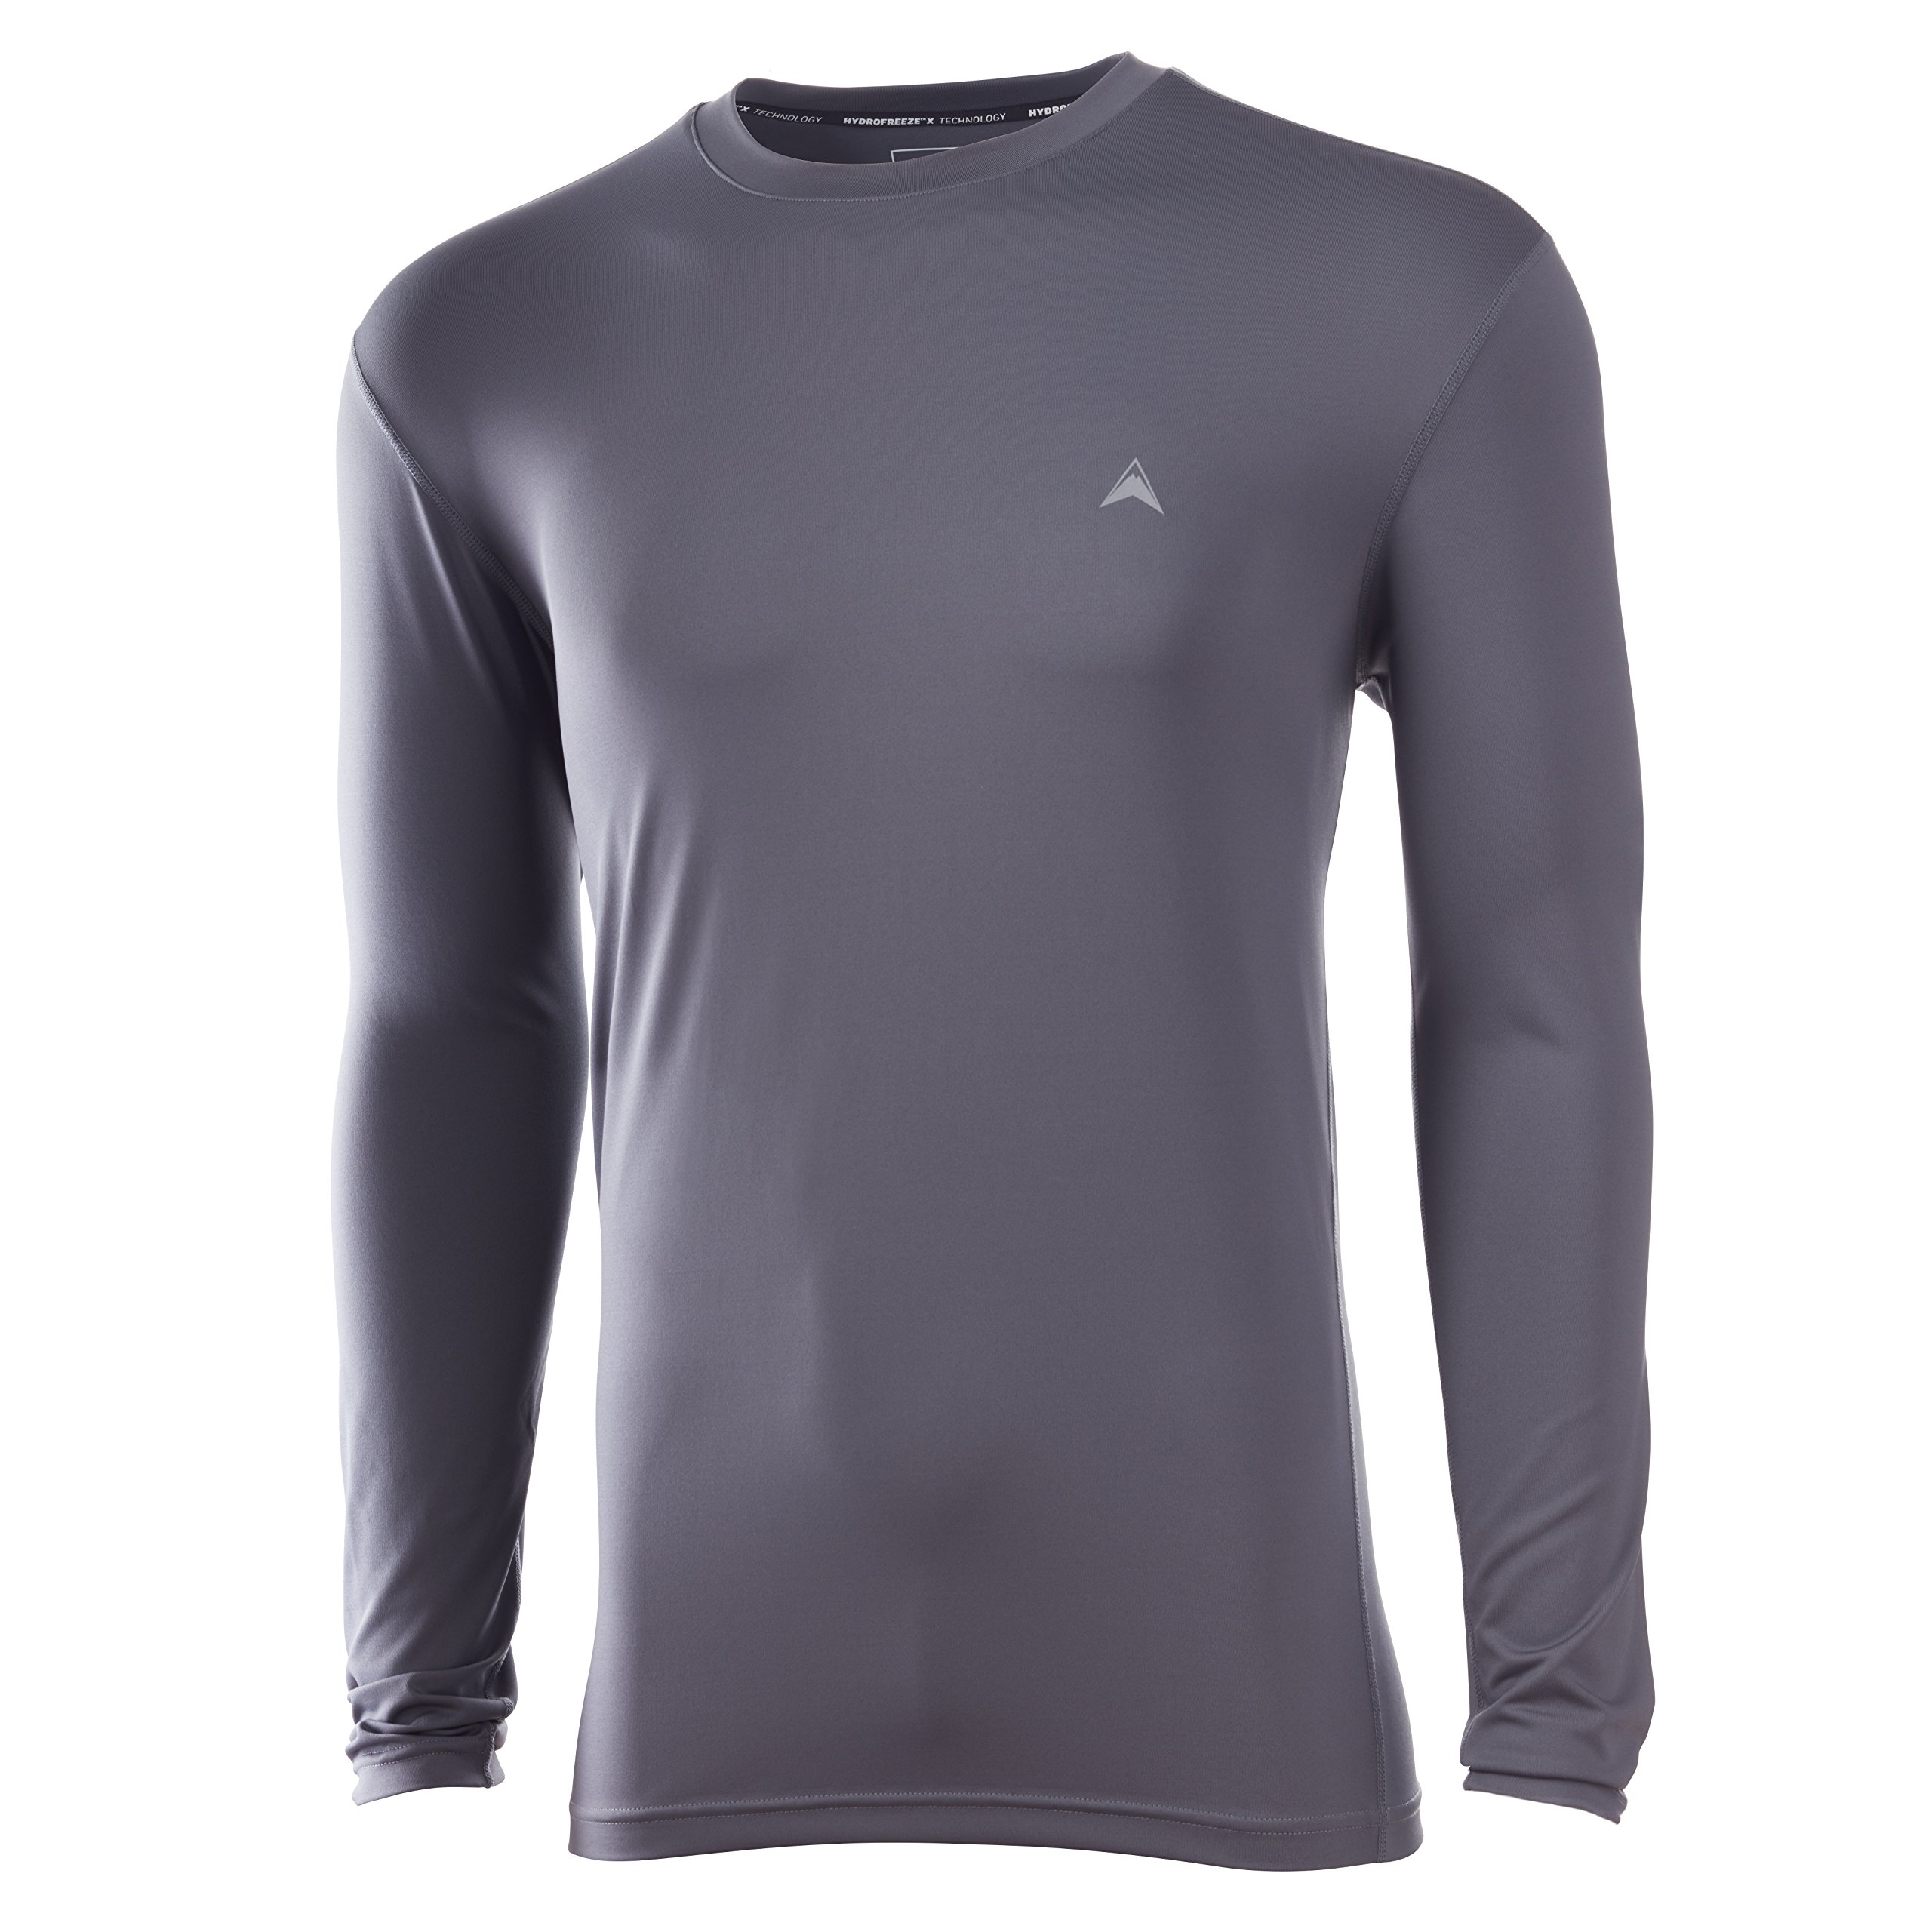 Arctic Cool Men's Solid Crew Neck Instant Cooling Long Sleeve Shirt with UPF 50+ Sun Protection, Storm Grey, XXL